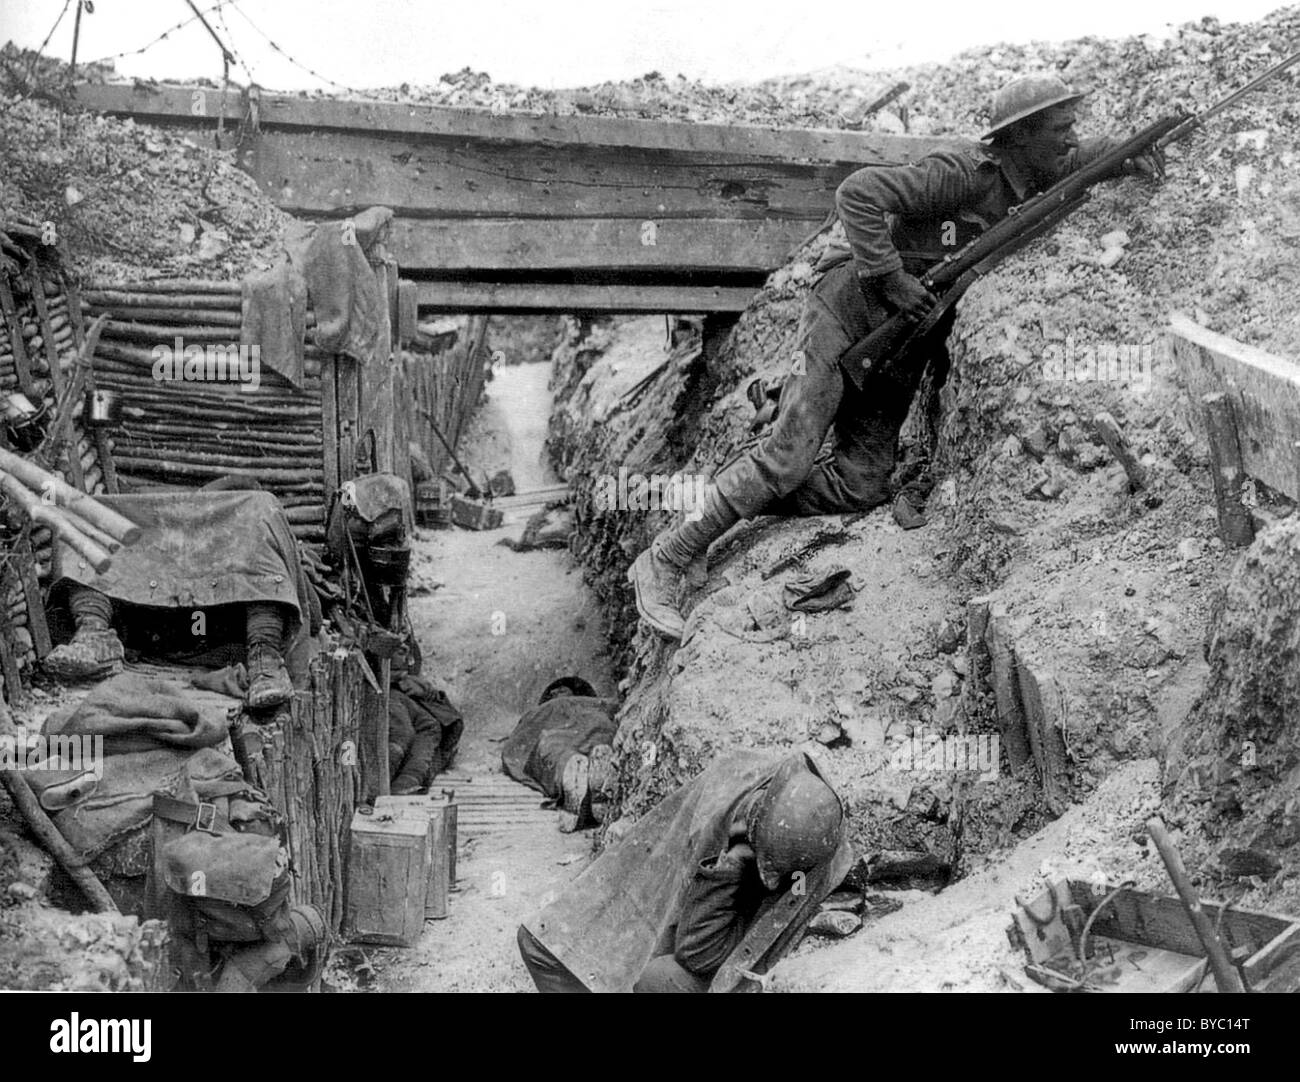 A British trench near the Albert-Bapaume road at Ovillers-la-Boisselle, July 1916 during the Battle of the Somme. Stock Photo